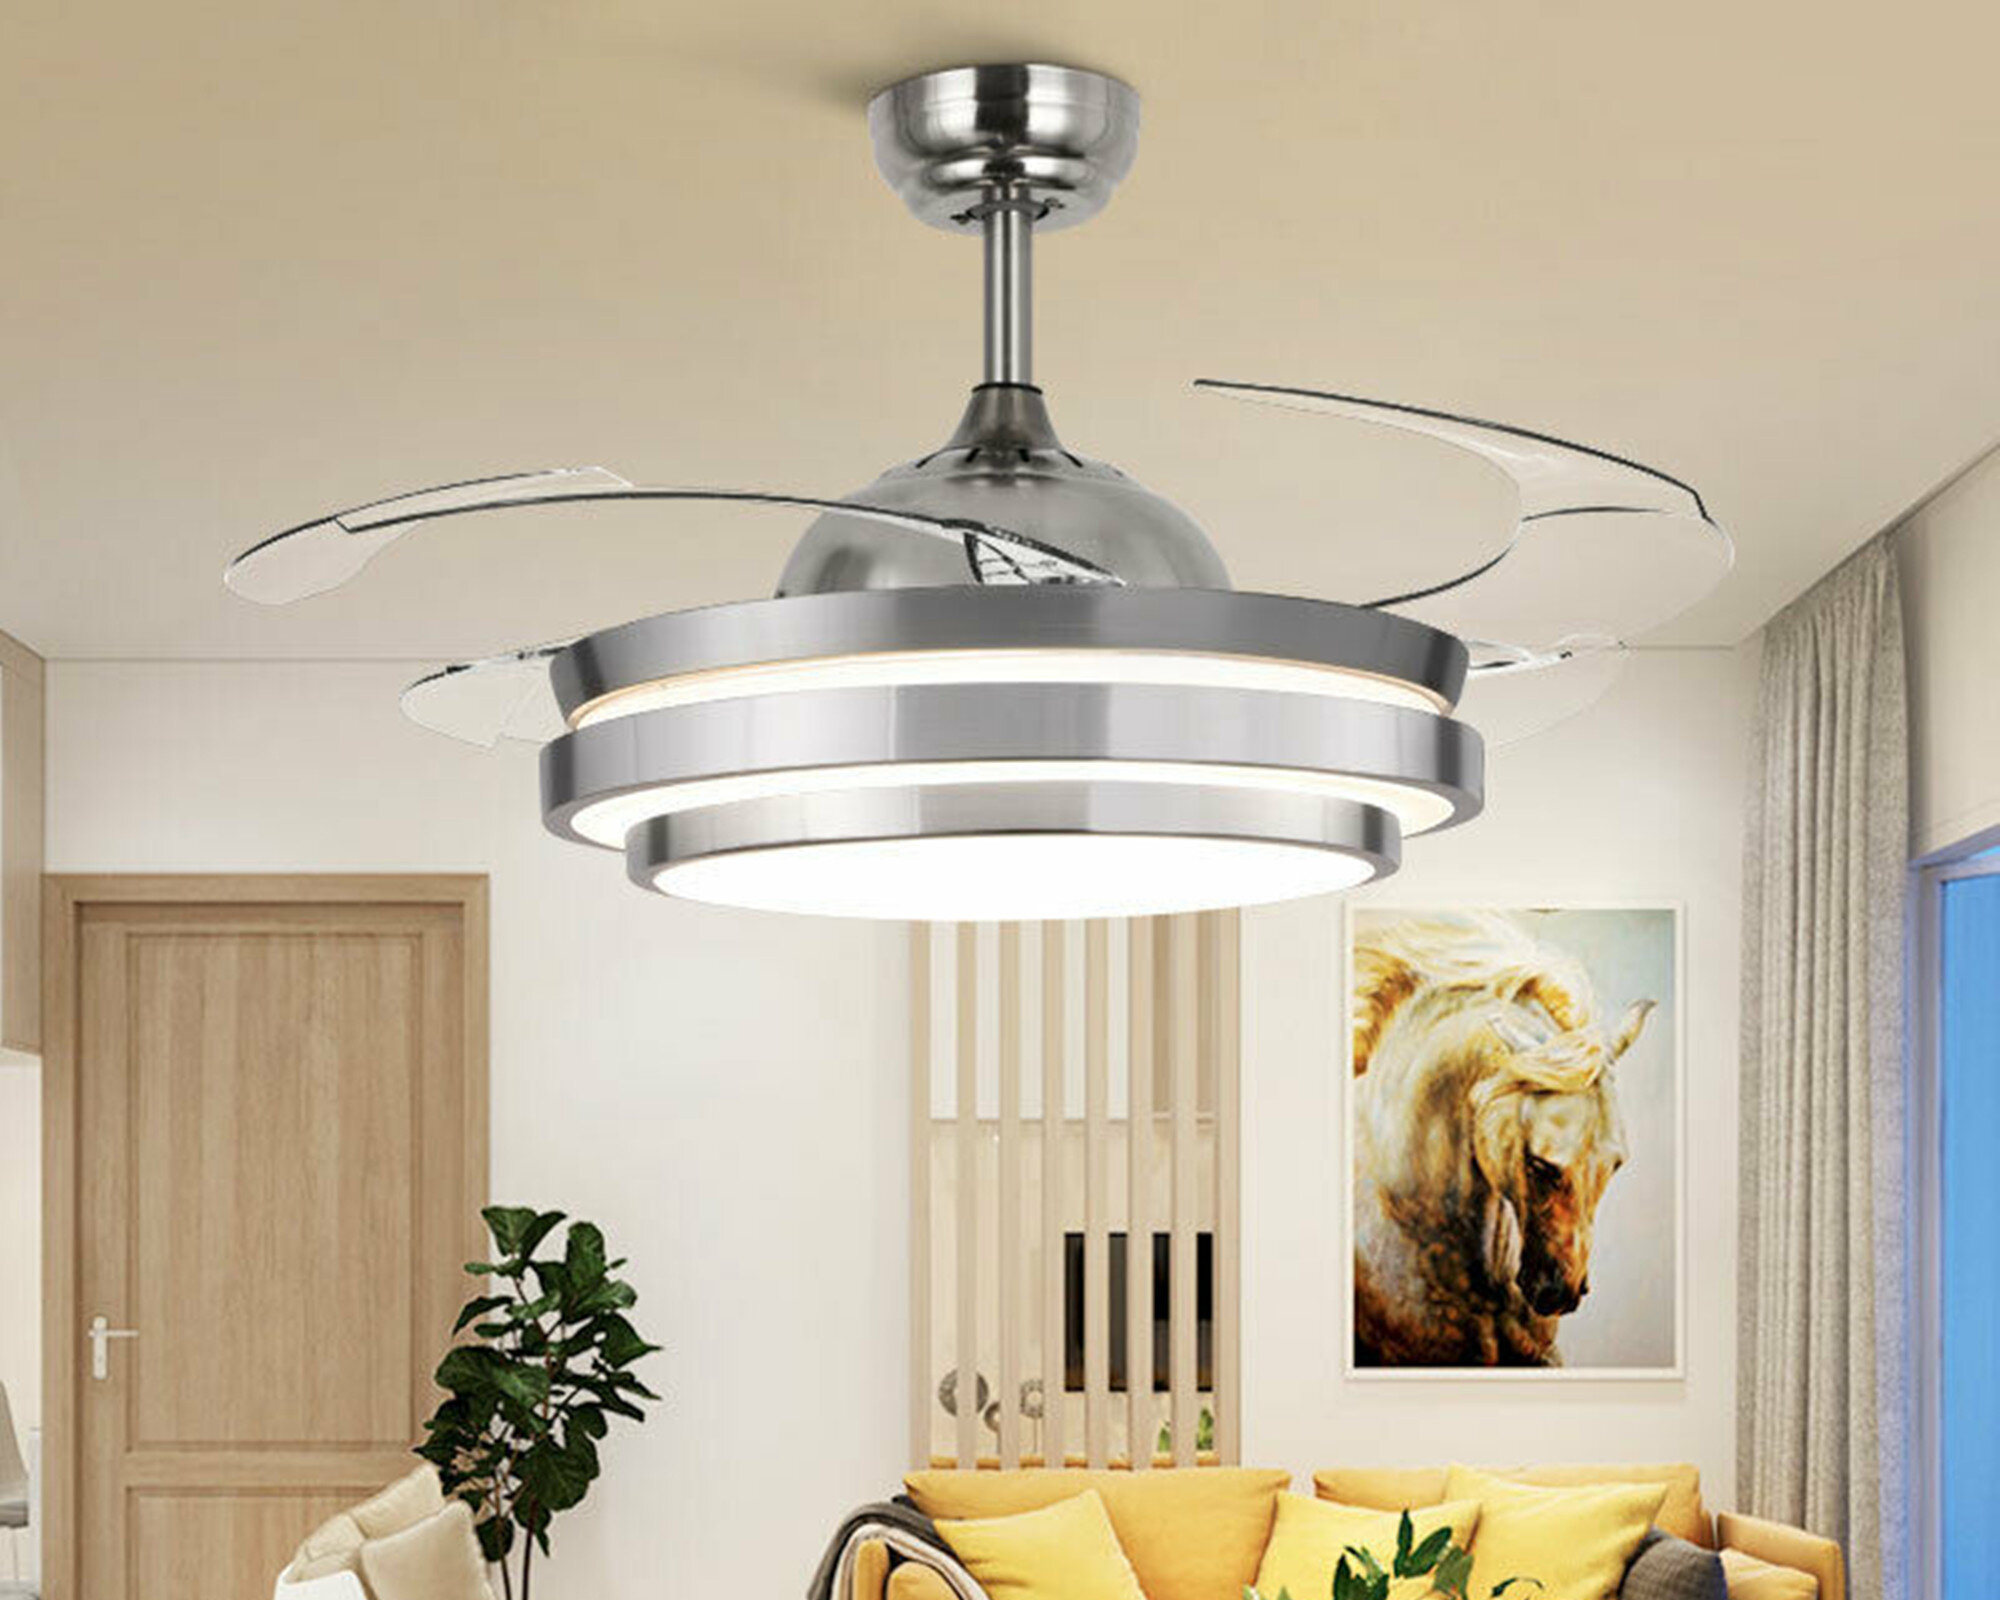 Orren Ellis 36 Aadin 4 Blade Led Retractable Blades Ceiling Fan With Remote Control And Light Kit Included Reviews Wayfair